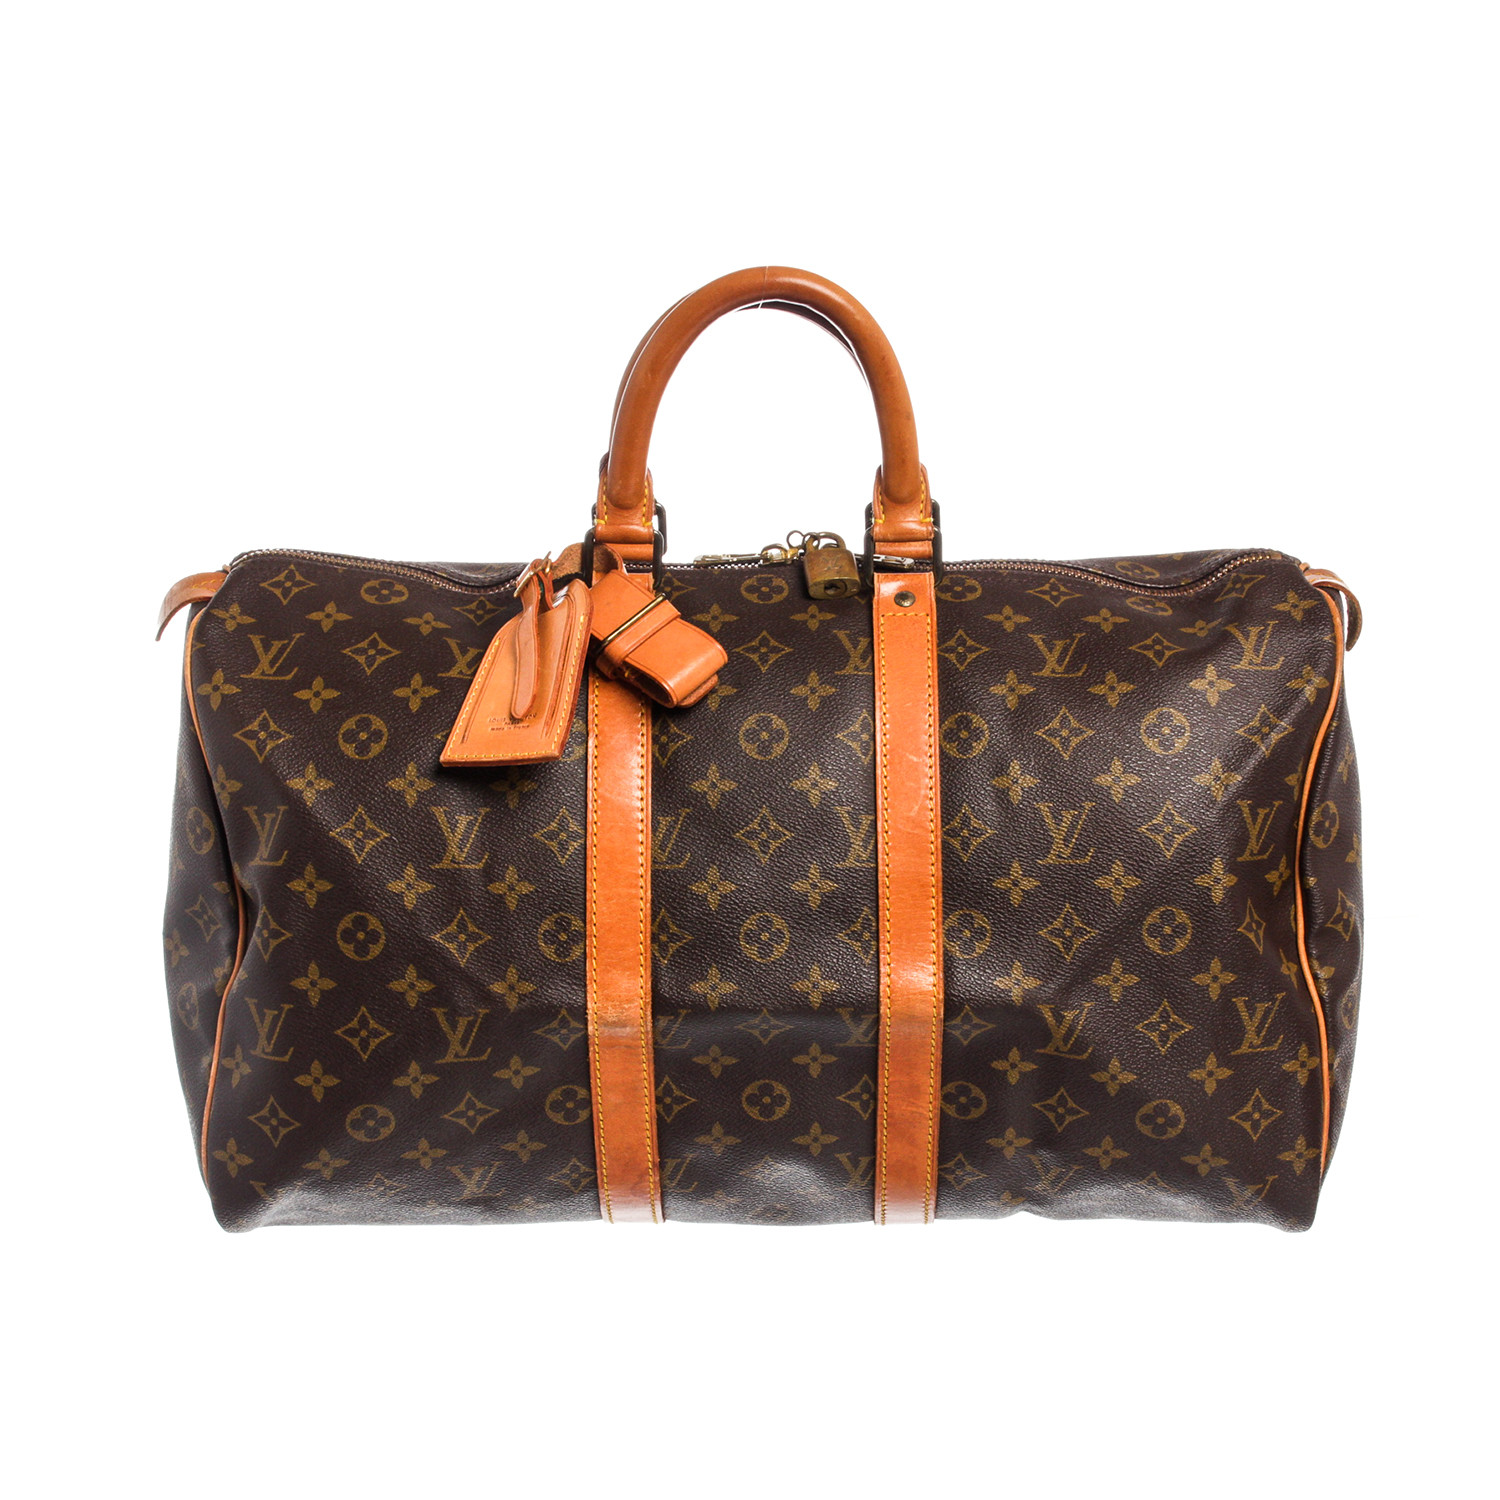 Monogram Canvas Leather Keepall 45 cm Duffle Bag Luggage    Pre-Owned    05632979d3441